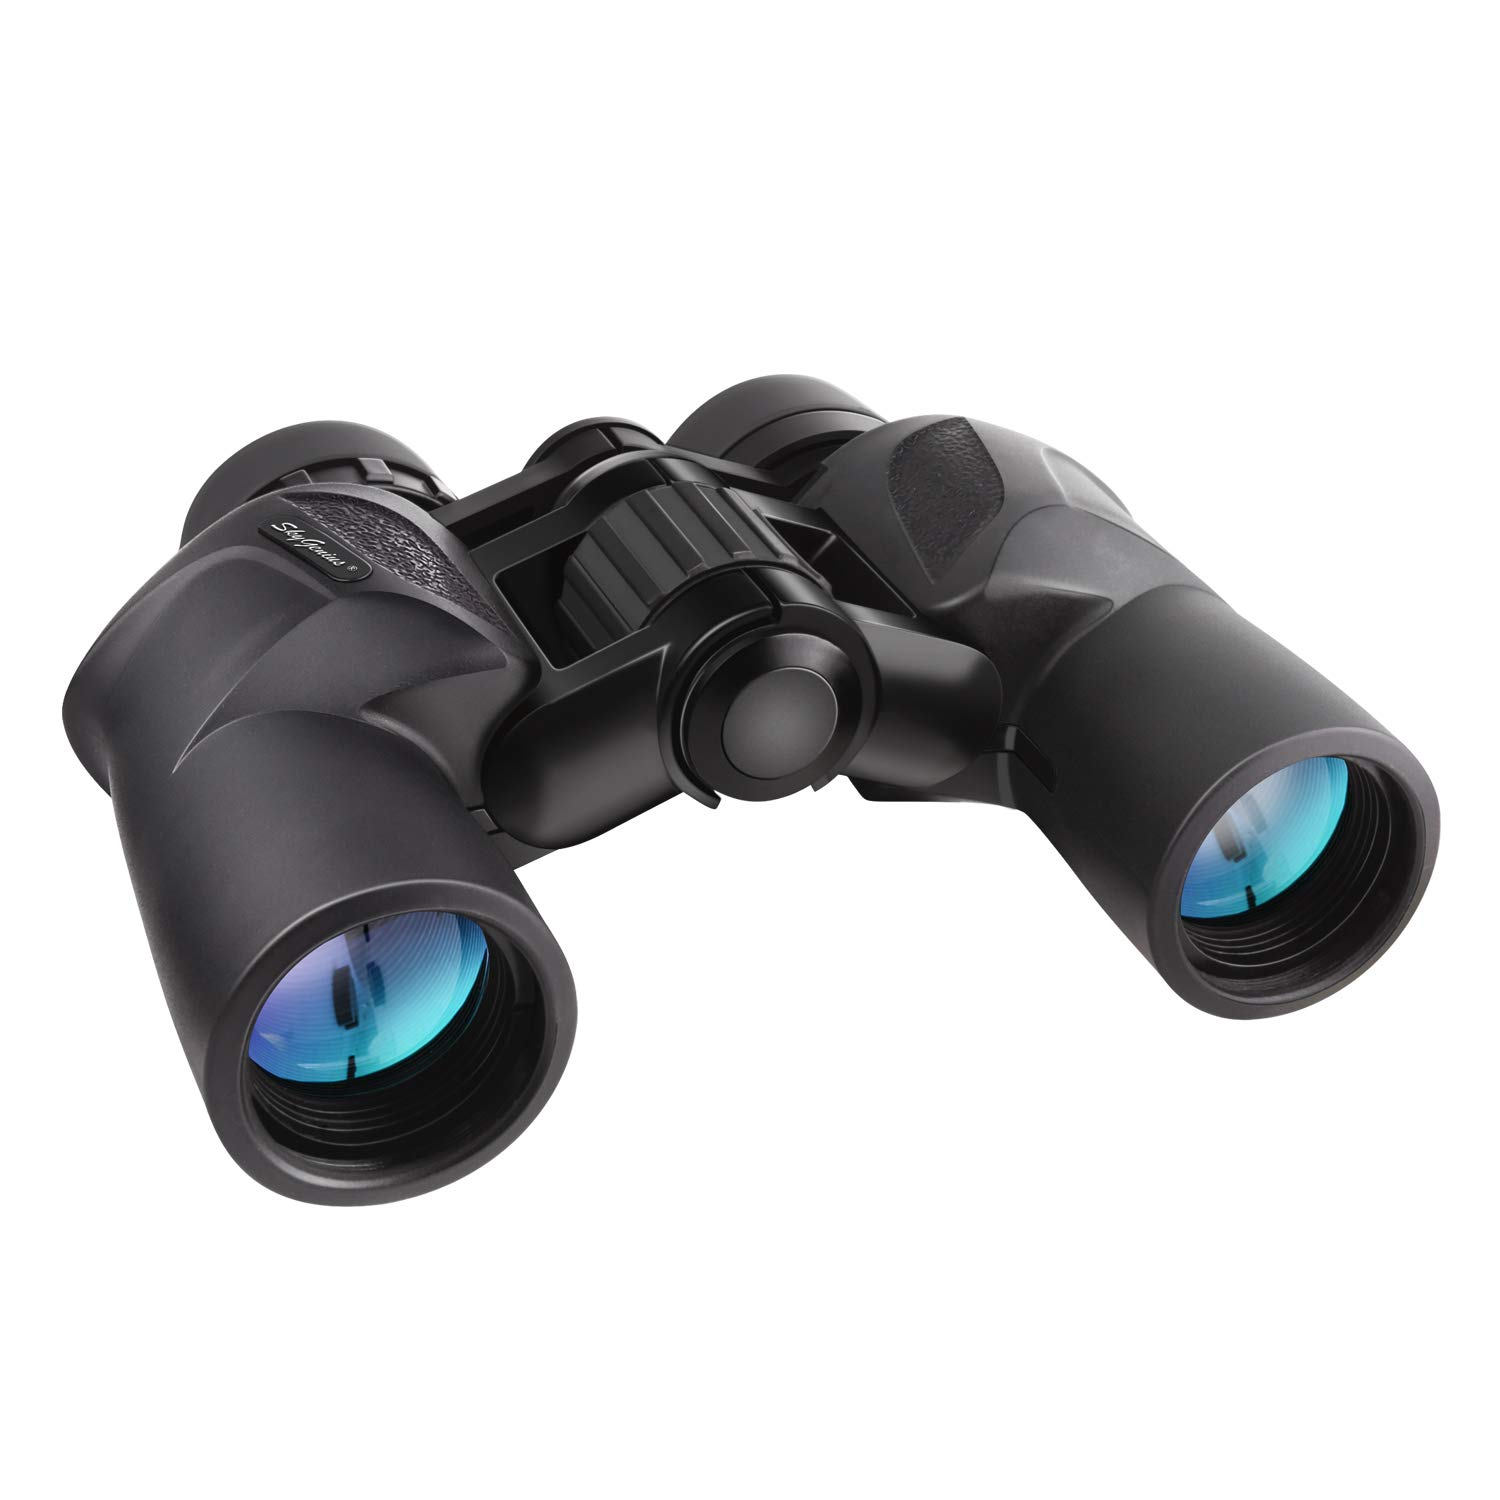 7x30 HD Quality Binoculars (BAK4, Green Lens). Compact Portable Foldling Bird Binoculars for Adults Kids Hunting Travelling Sightseeing Concert Opera with Low Light Night Vision by SkyGenius